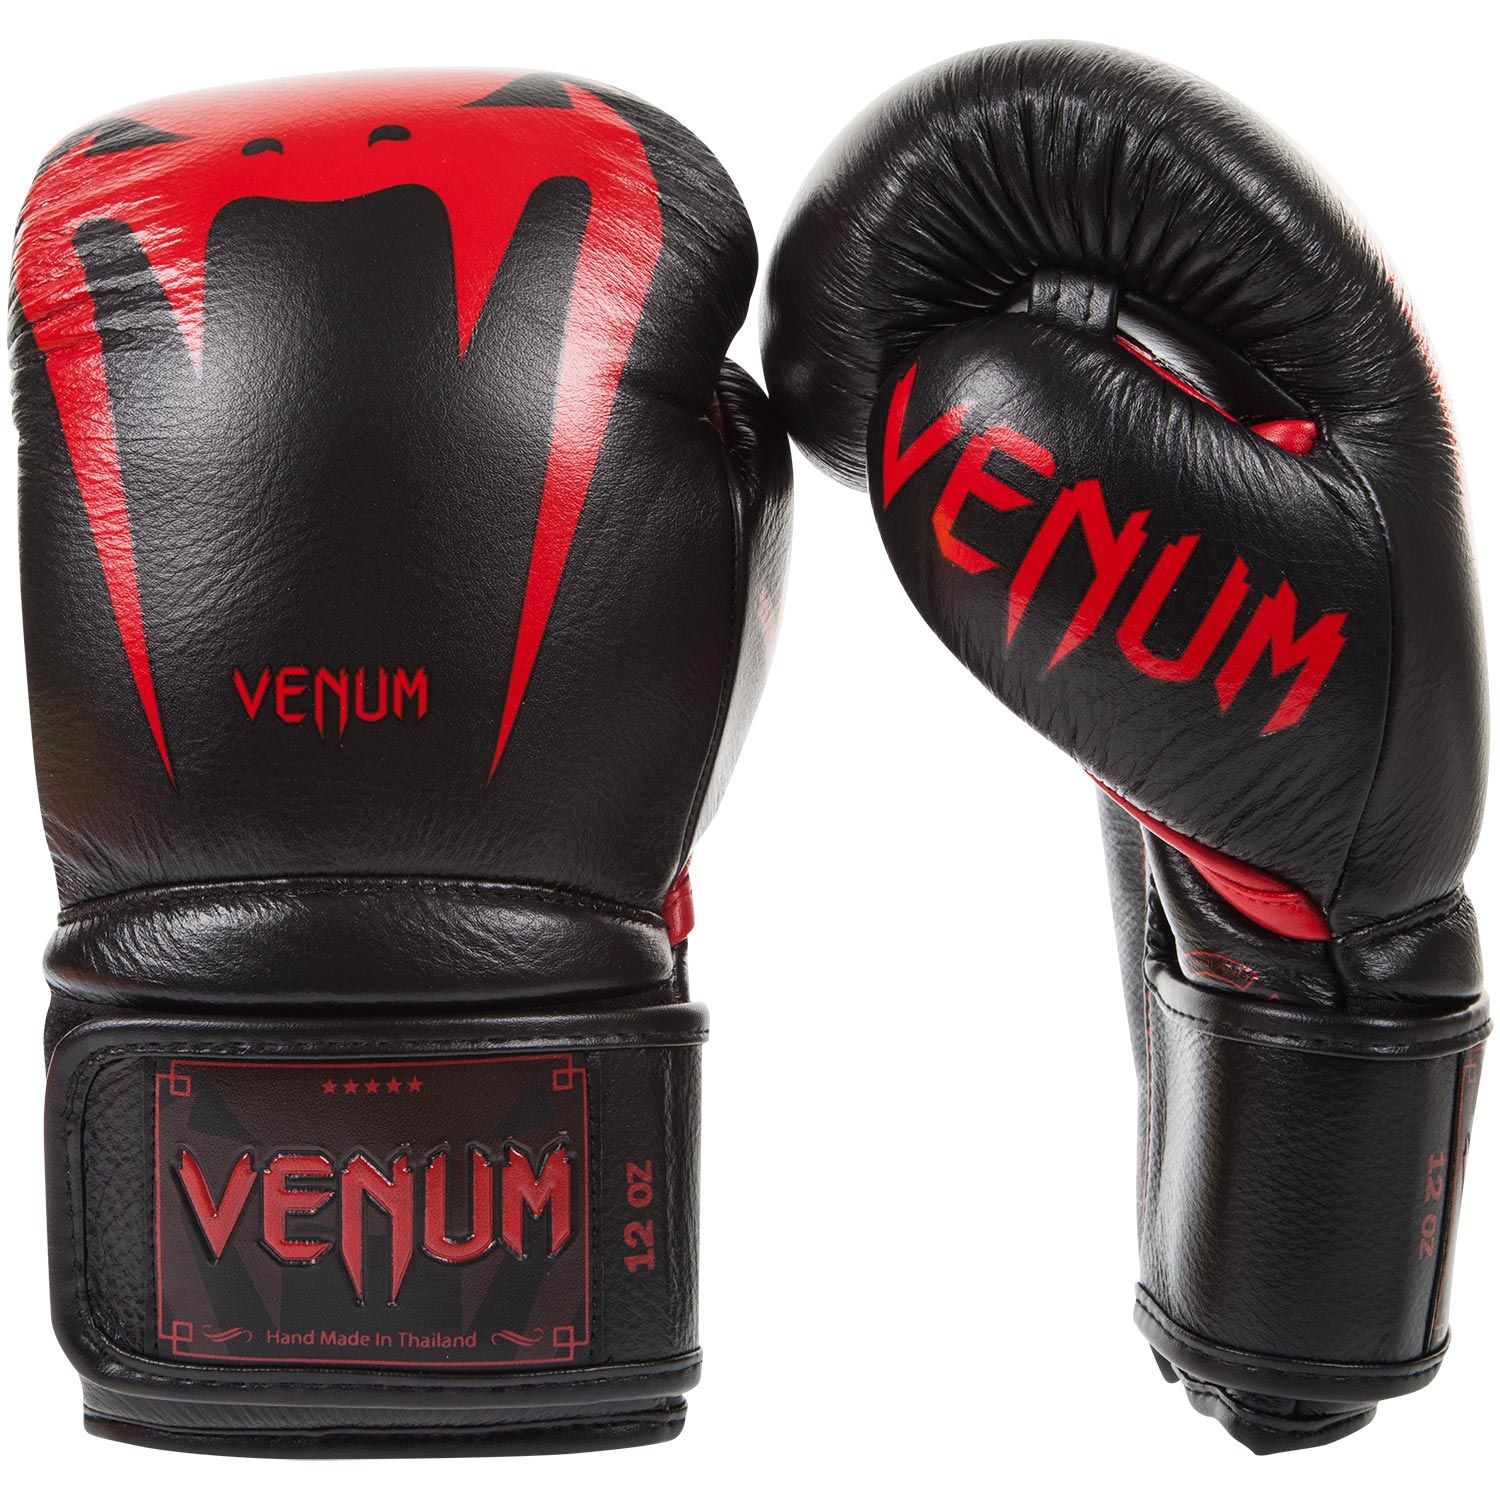 Venum boks rukavice Giant 3.0 Black Devil